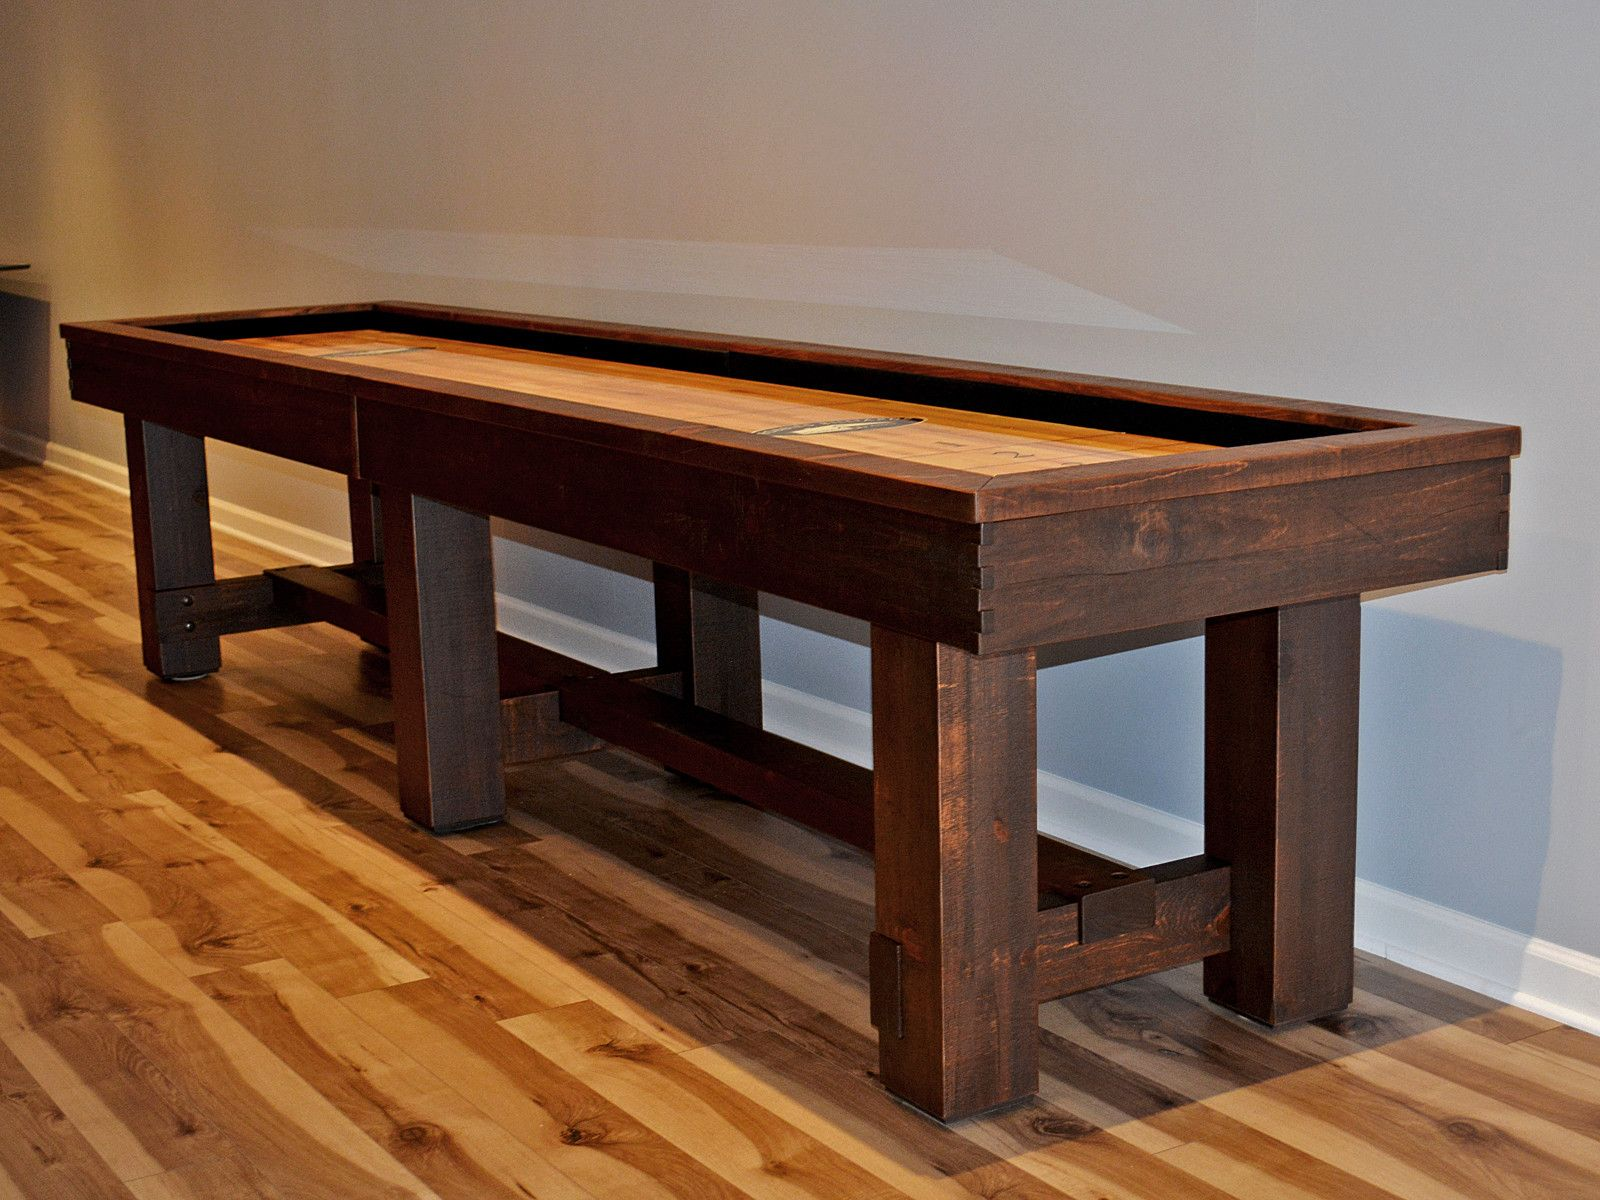 miraculous plan ideas sale house for cool shuffleboard engine image table your best decor lighting